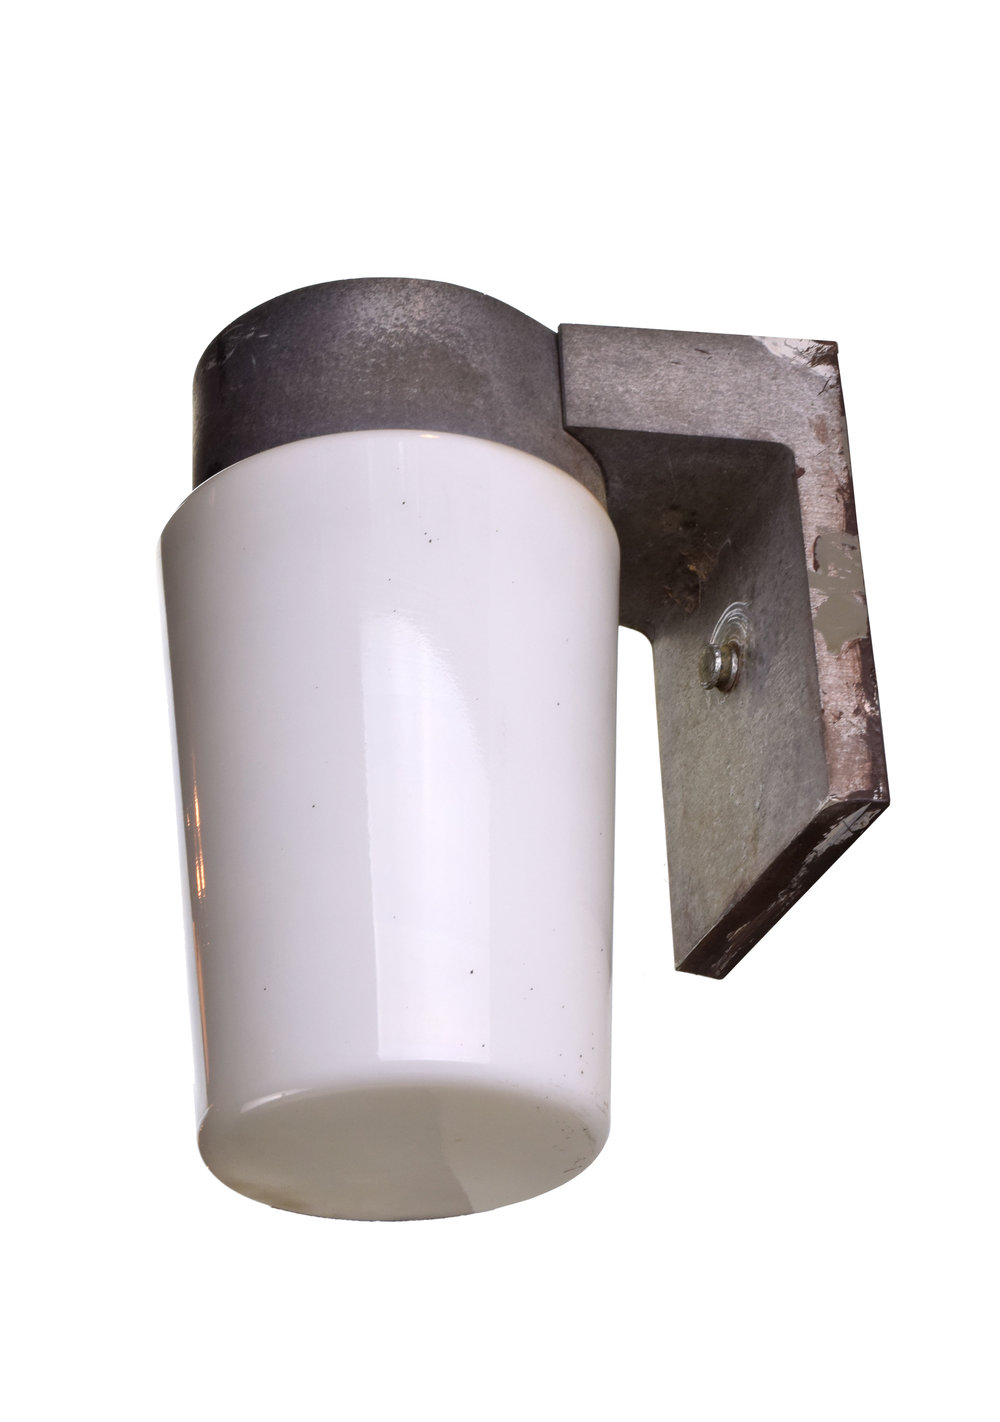 47065-aluminum-exterior-sconce-side-view.jpg